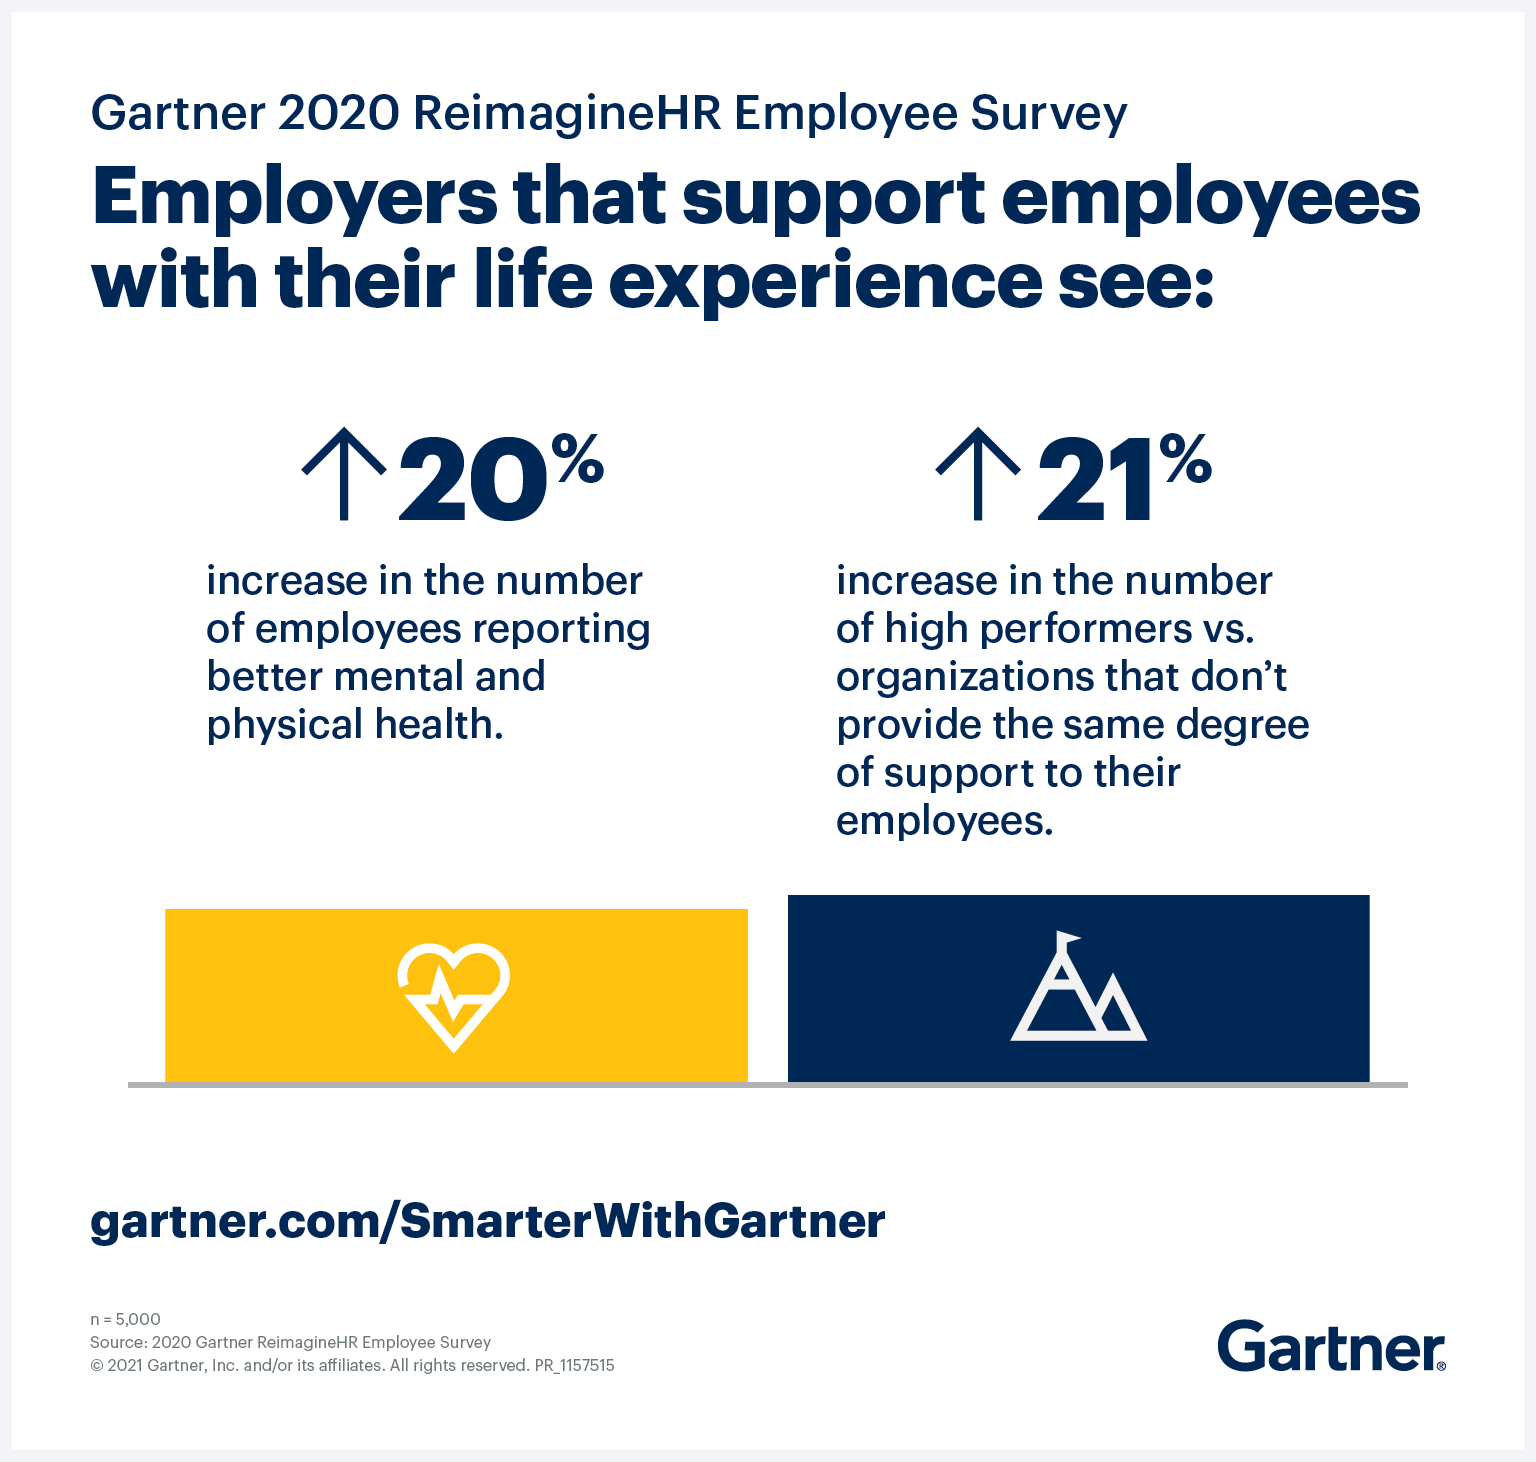 Employers need to support employees' entire life experience, not just work experience